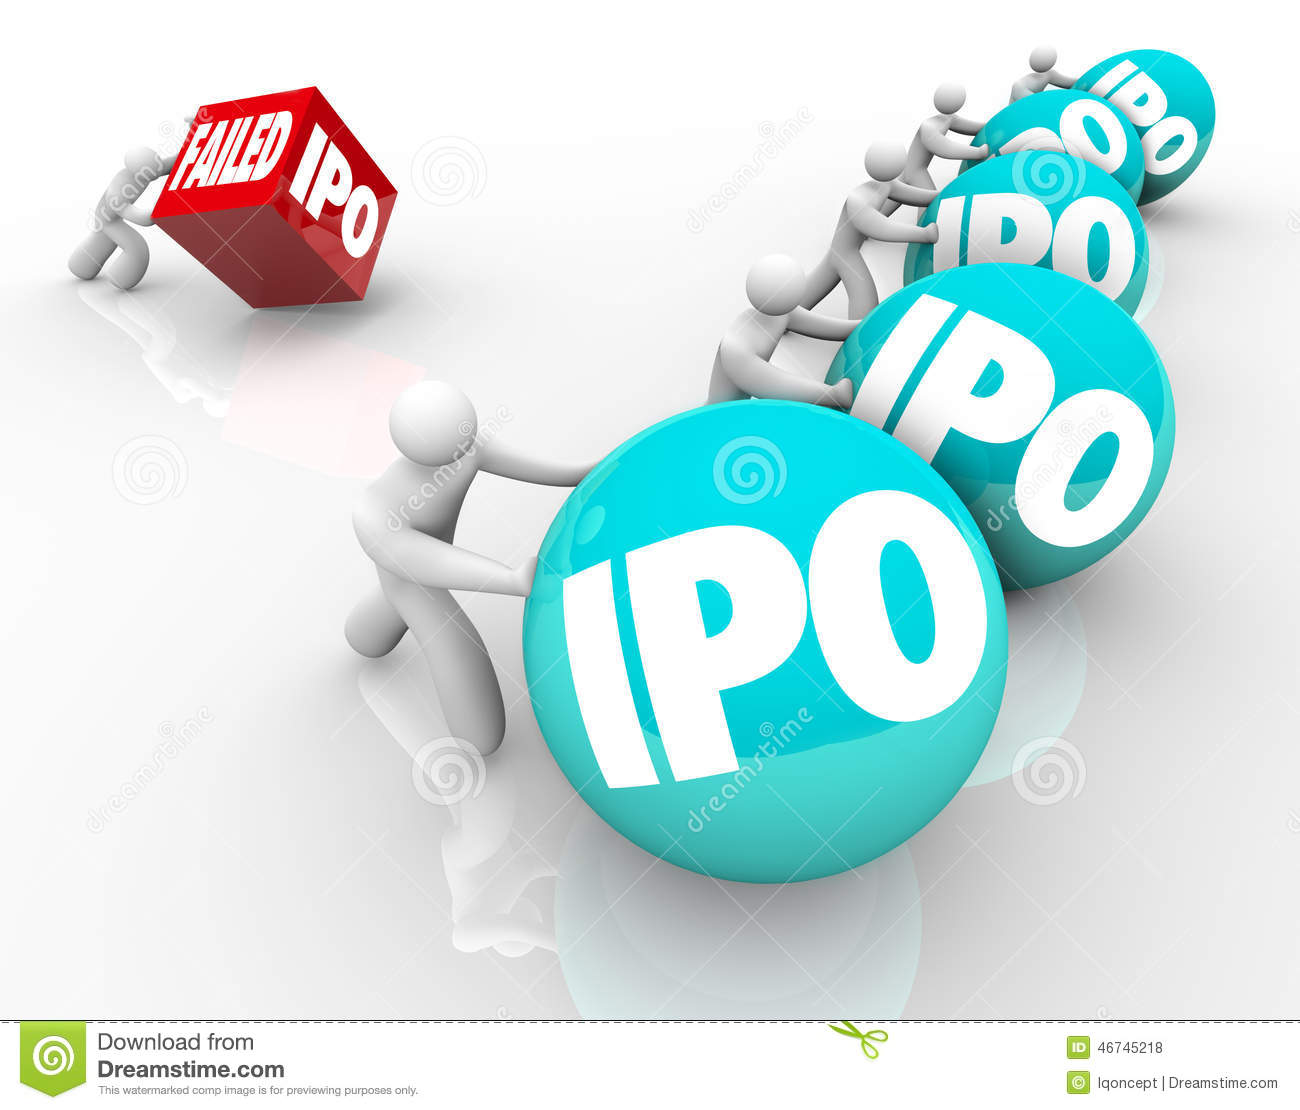 New chemical company ipo